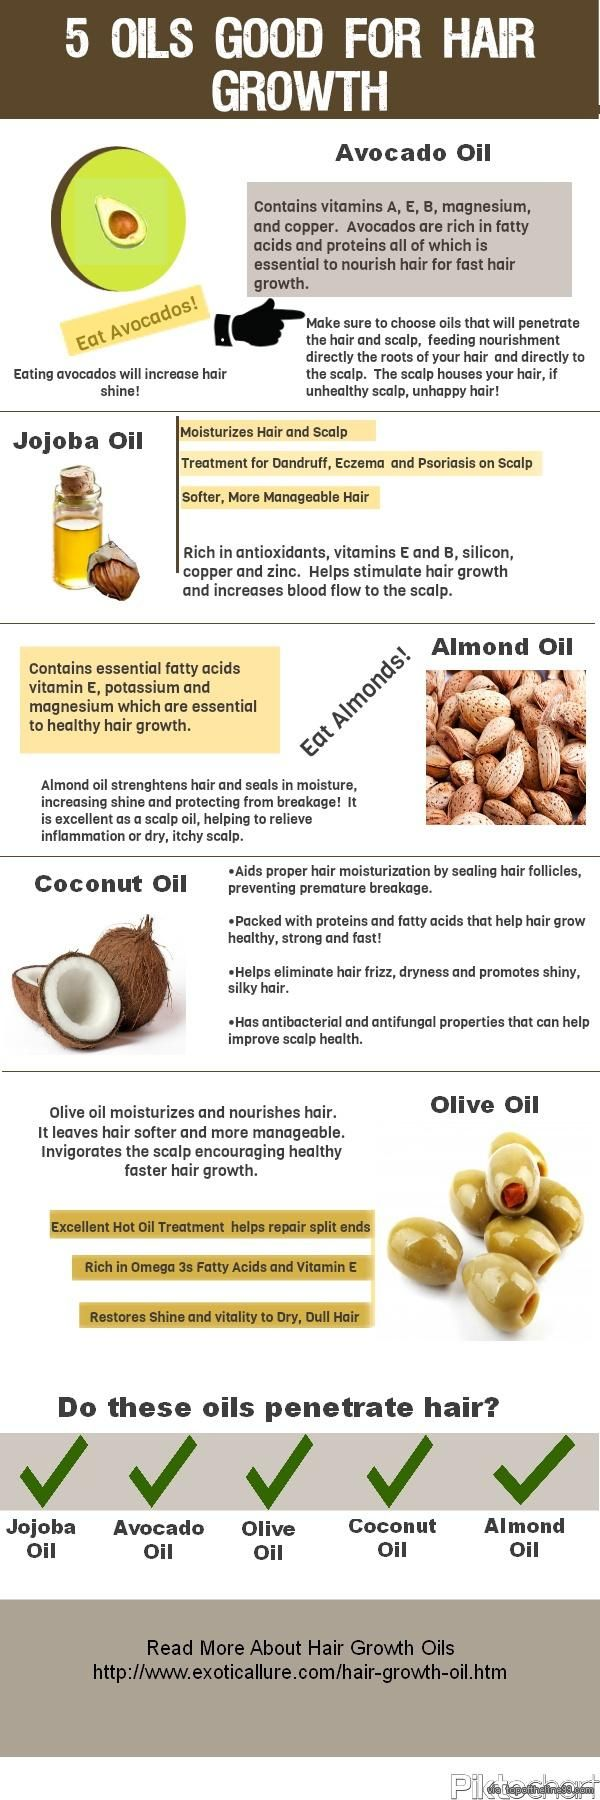 Oils Good for Hair Growth. Try a hot oil treatment with Olive oil for softer, healthier looking hair! #hairmoisture #hairmoisturizer #moistenhair #hairteatments #moisturetreatment #hairtips #haircare #hairconditioner #deepconditioner #conditioningtreatment #hotoiltreatment